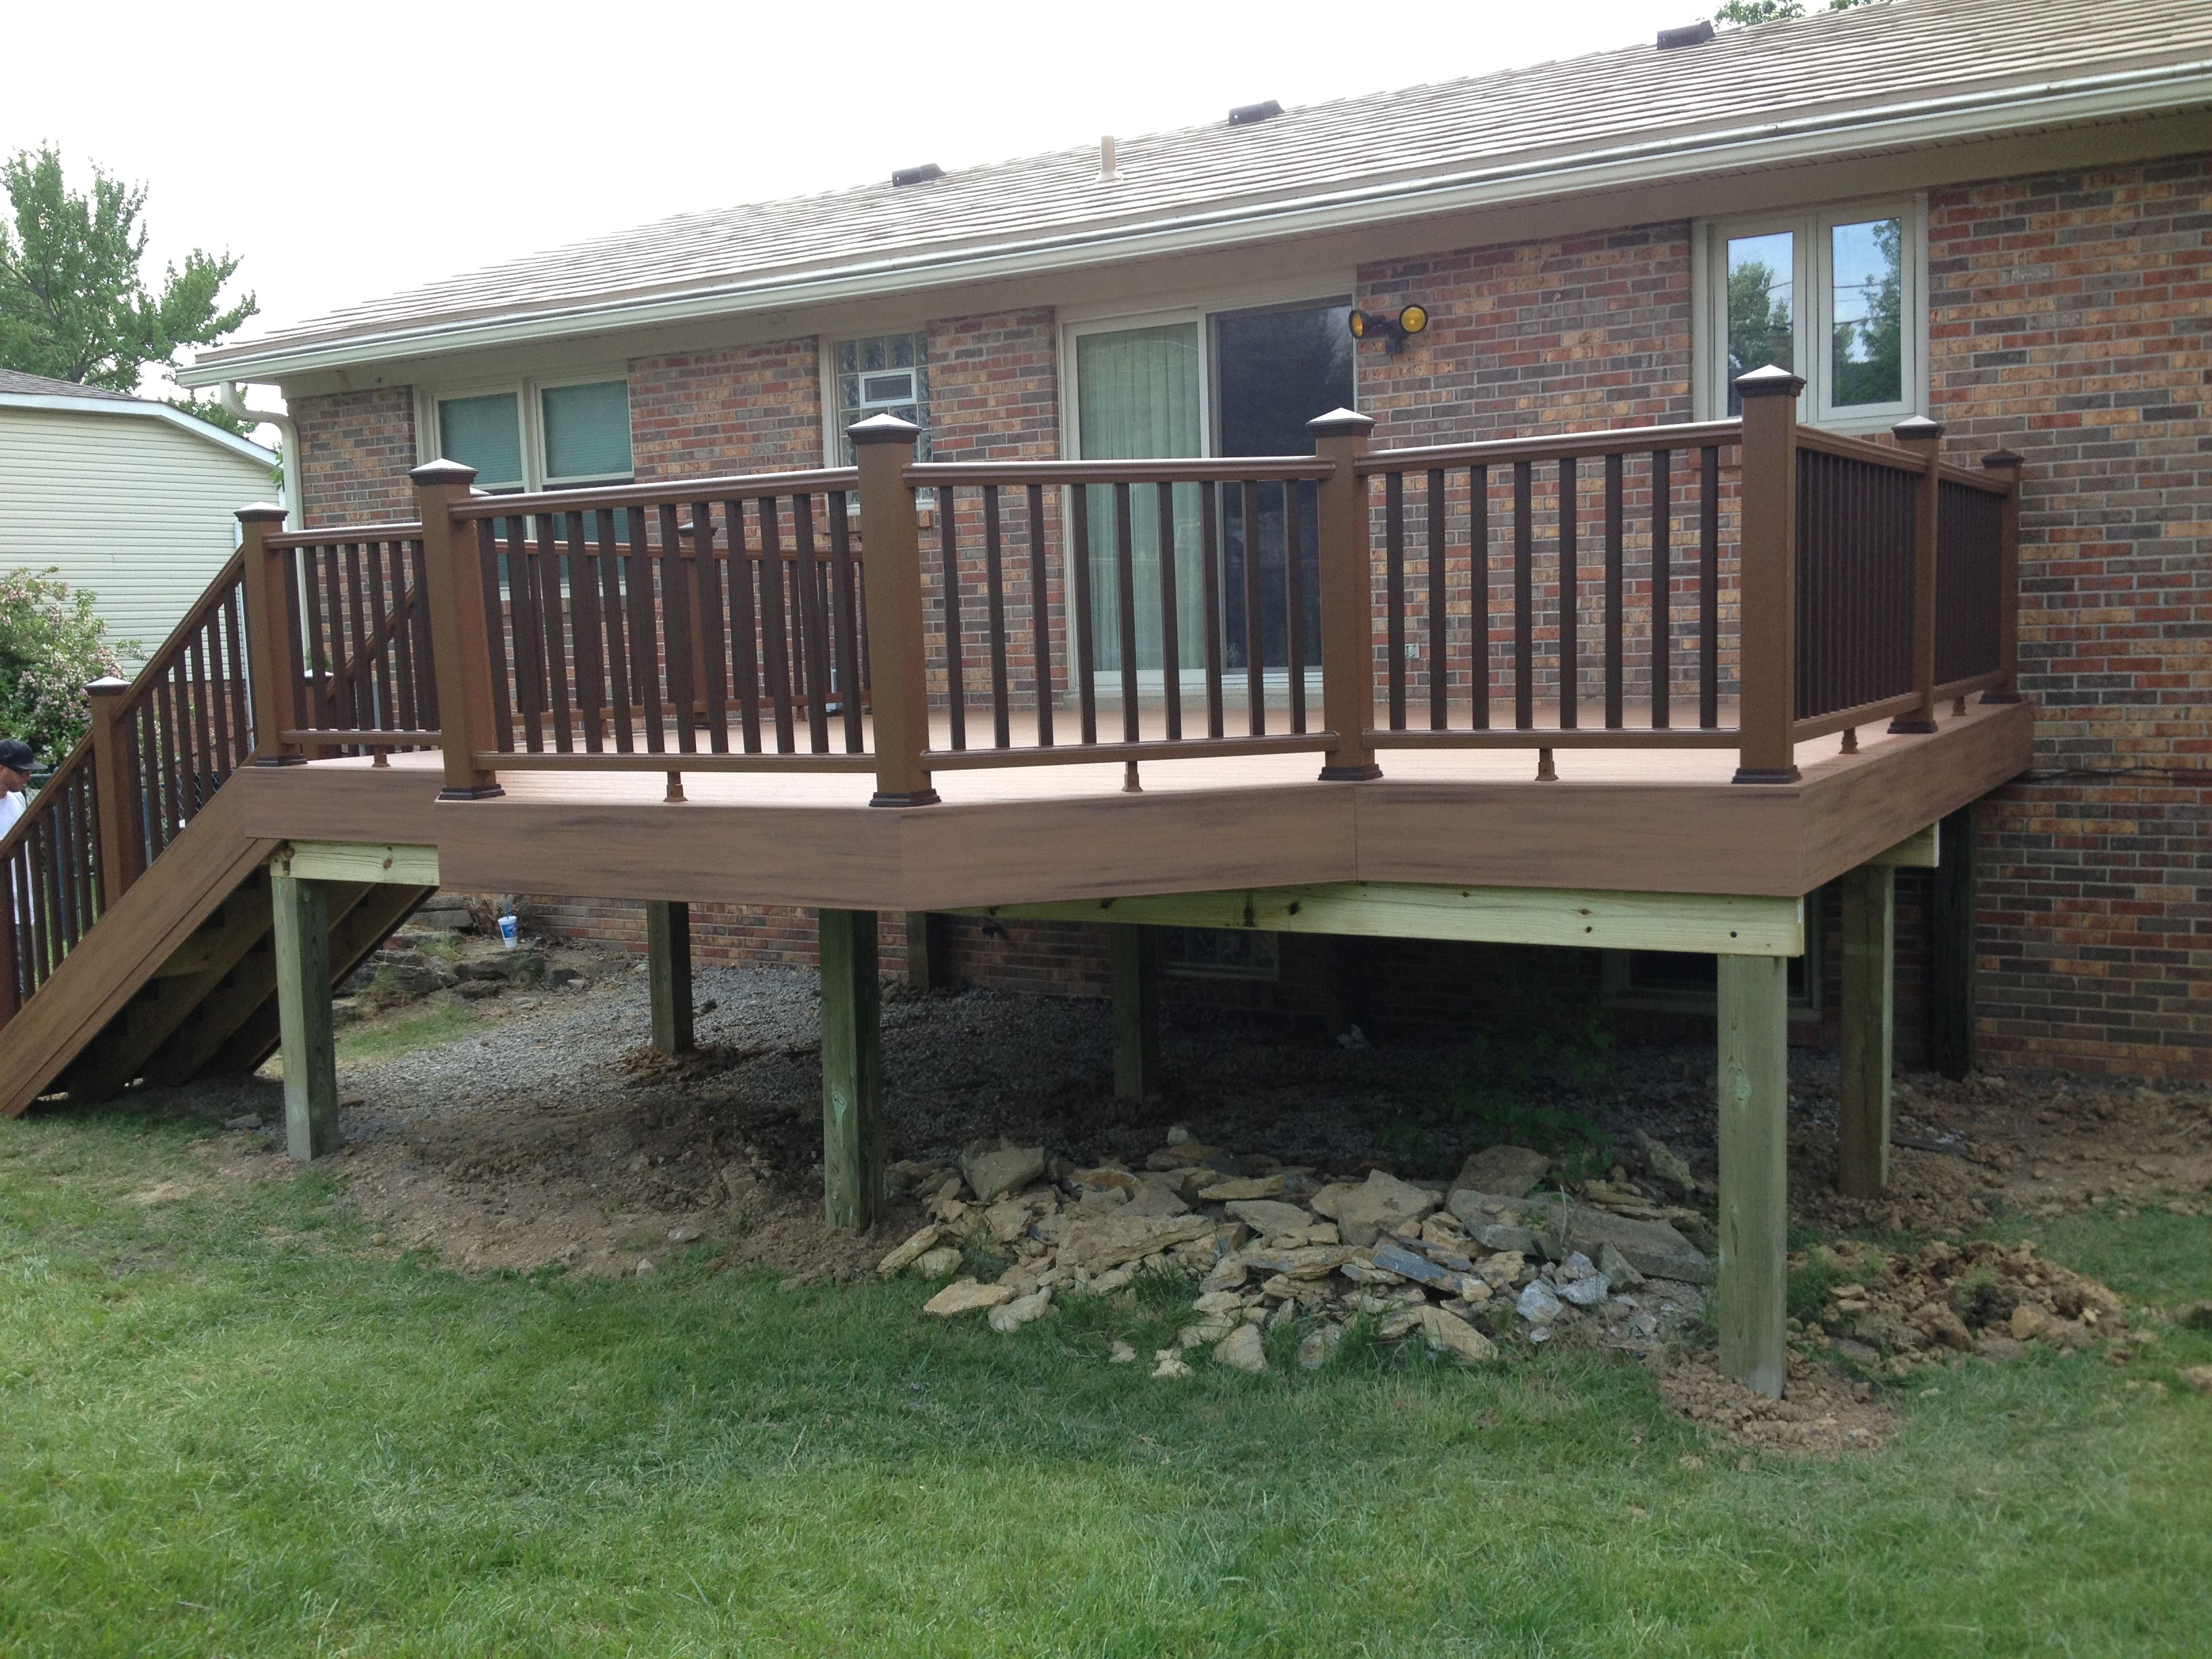 Trex Tiki Torch Deck With A 45 Degree Bump Out For The